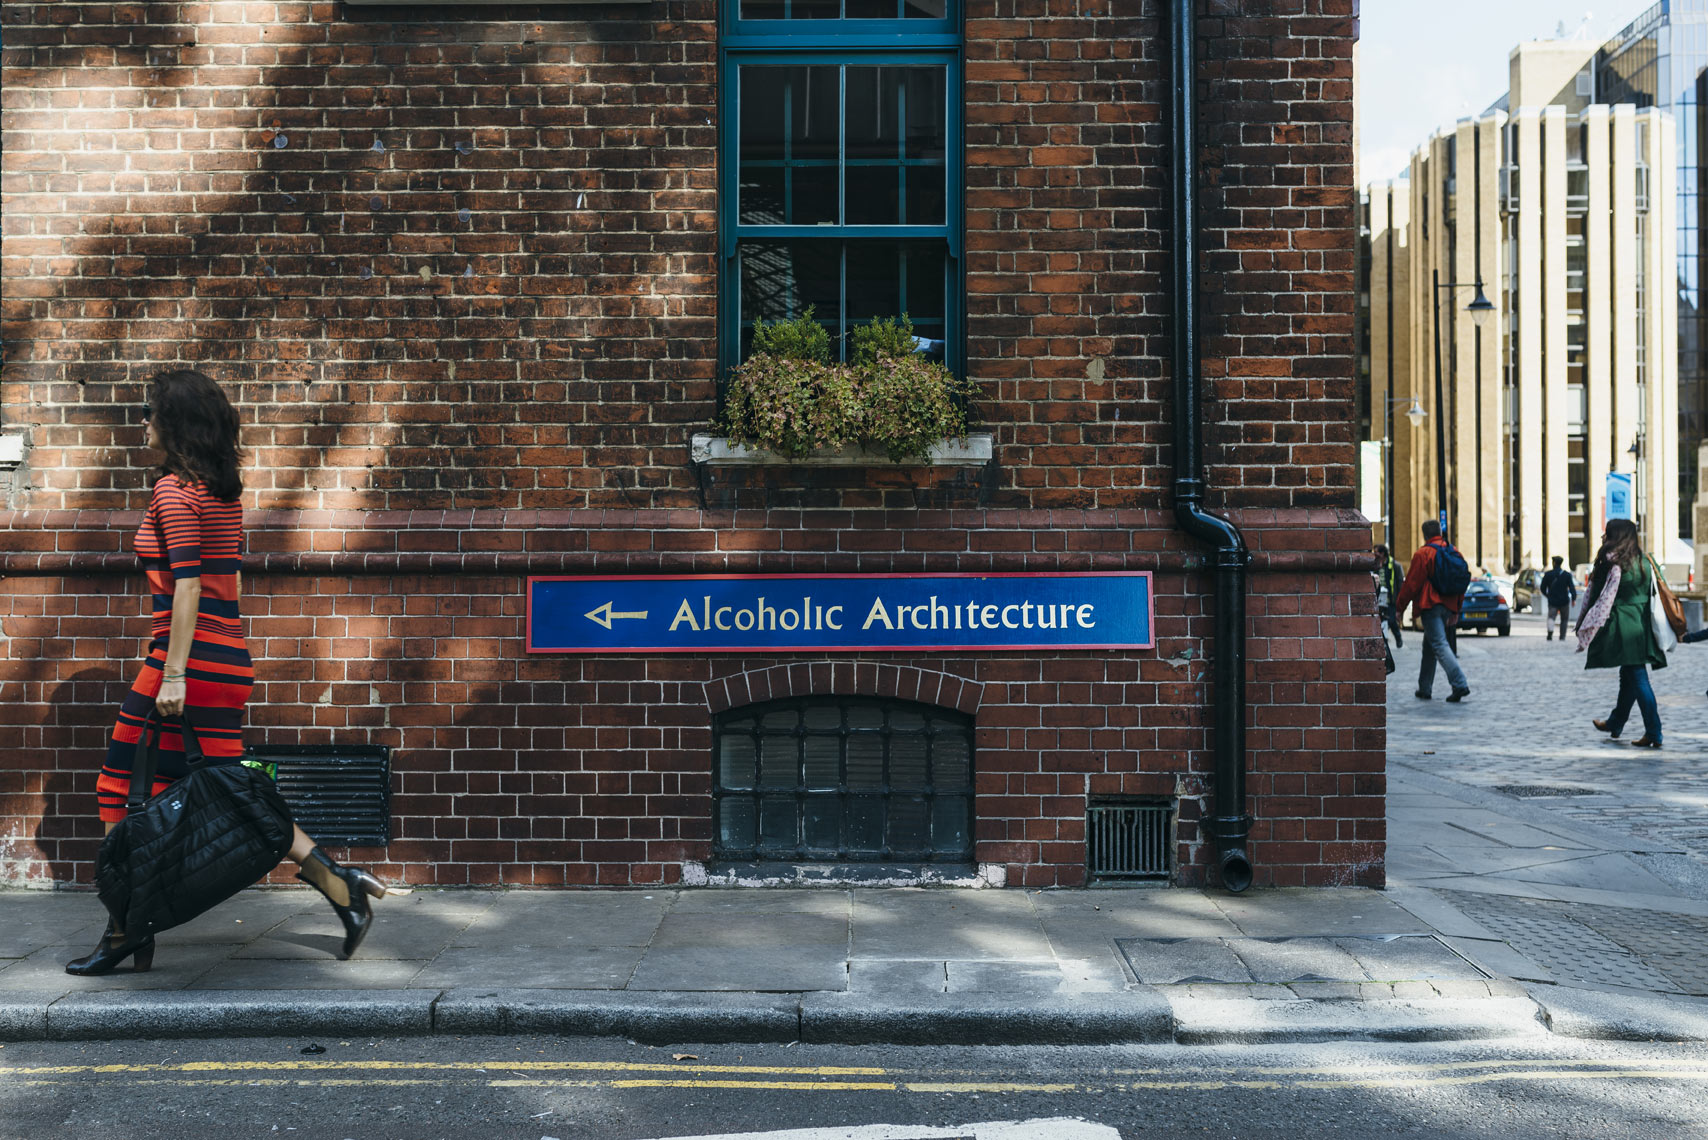 Stylish-woman-walks-by-Alcoholic-Architecture-sign-on-brick-building